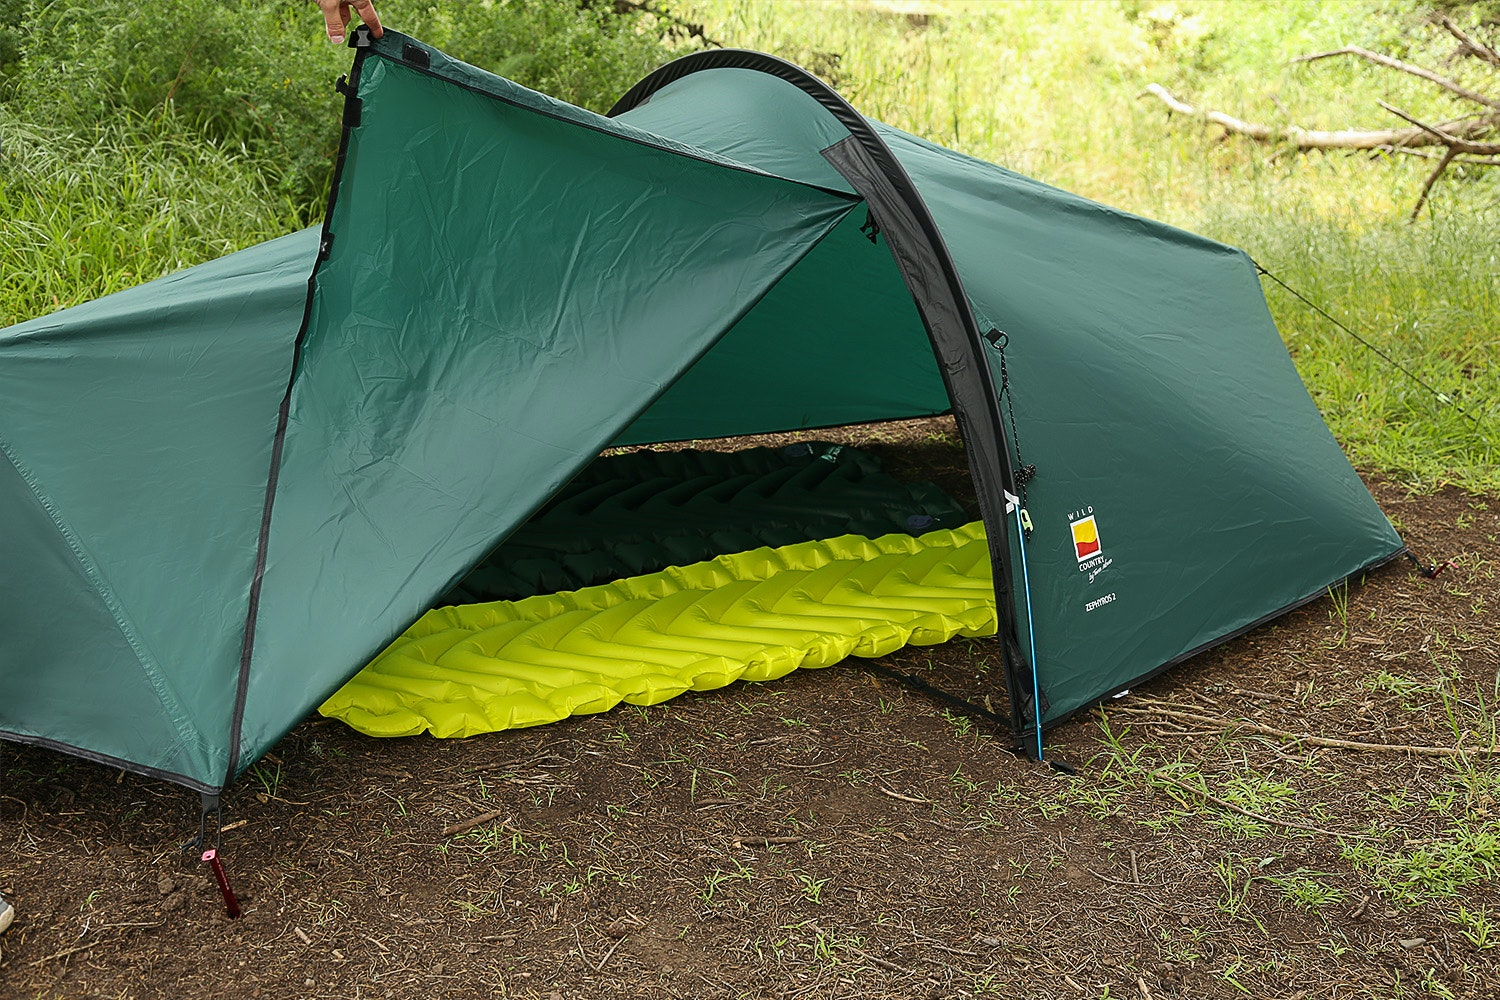 Terra Nova Wild Country Zephyros 1P or 2P Tent & Terra Nova Wild Country Zephyros 1P or 2P Tent | Price u0026 Reviews ...